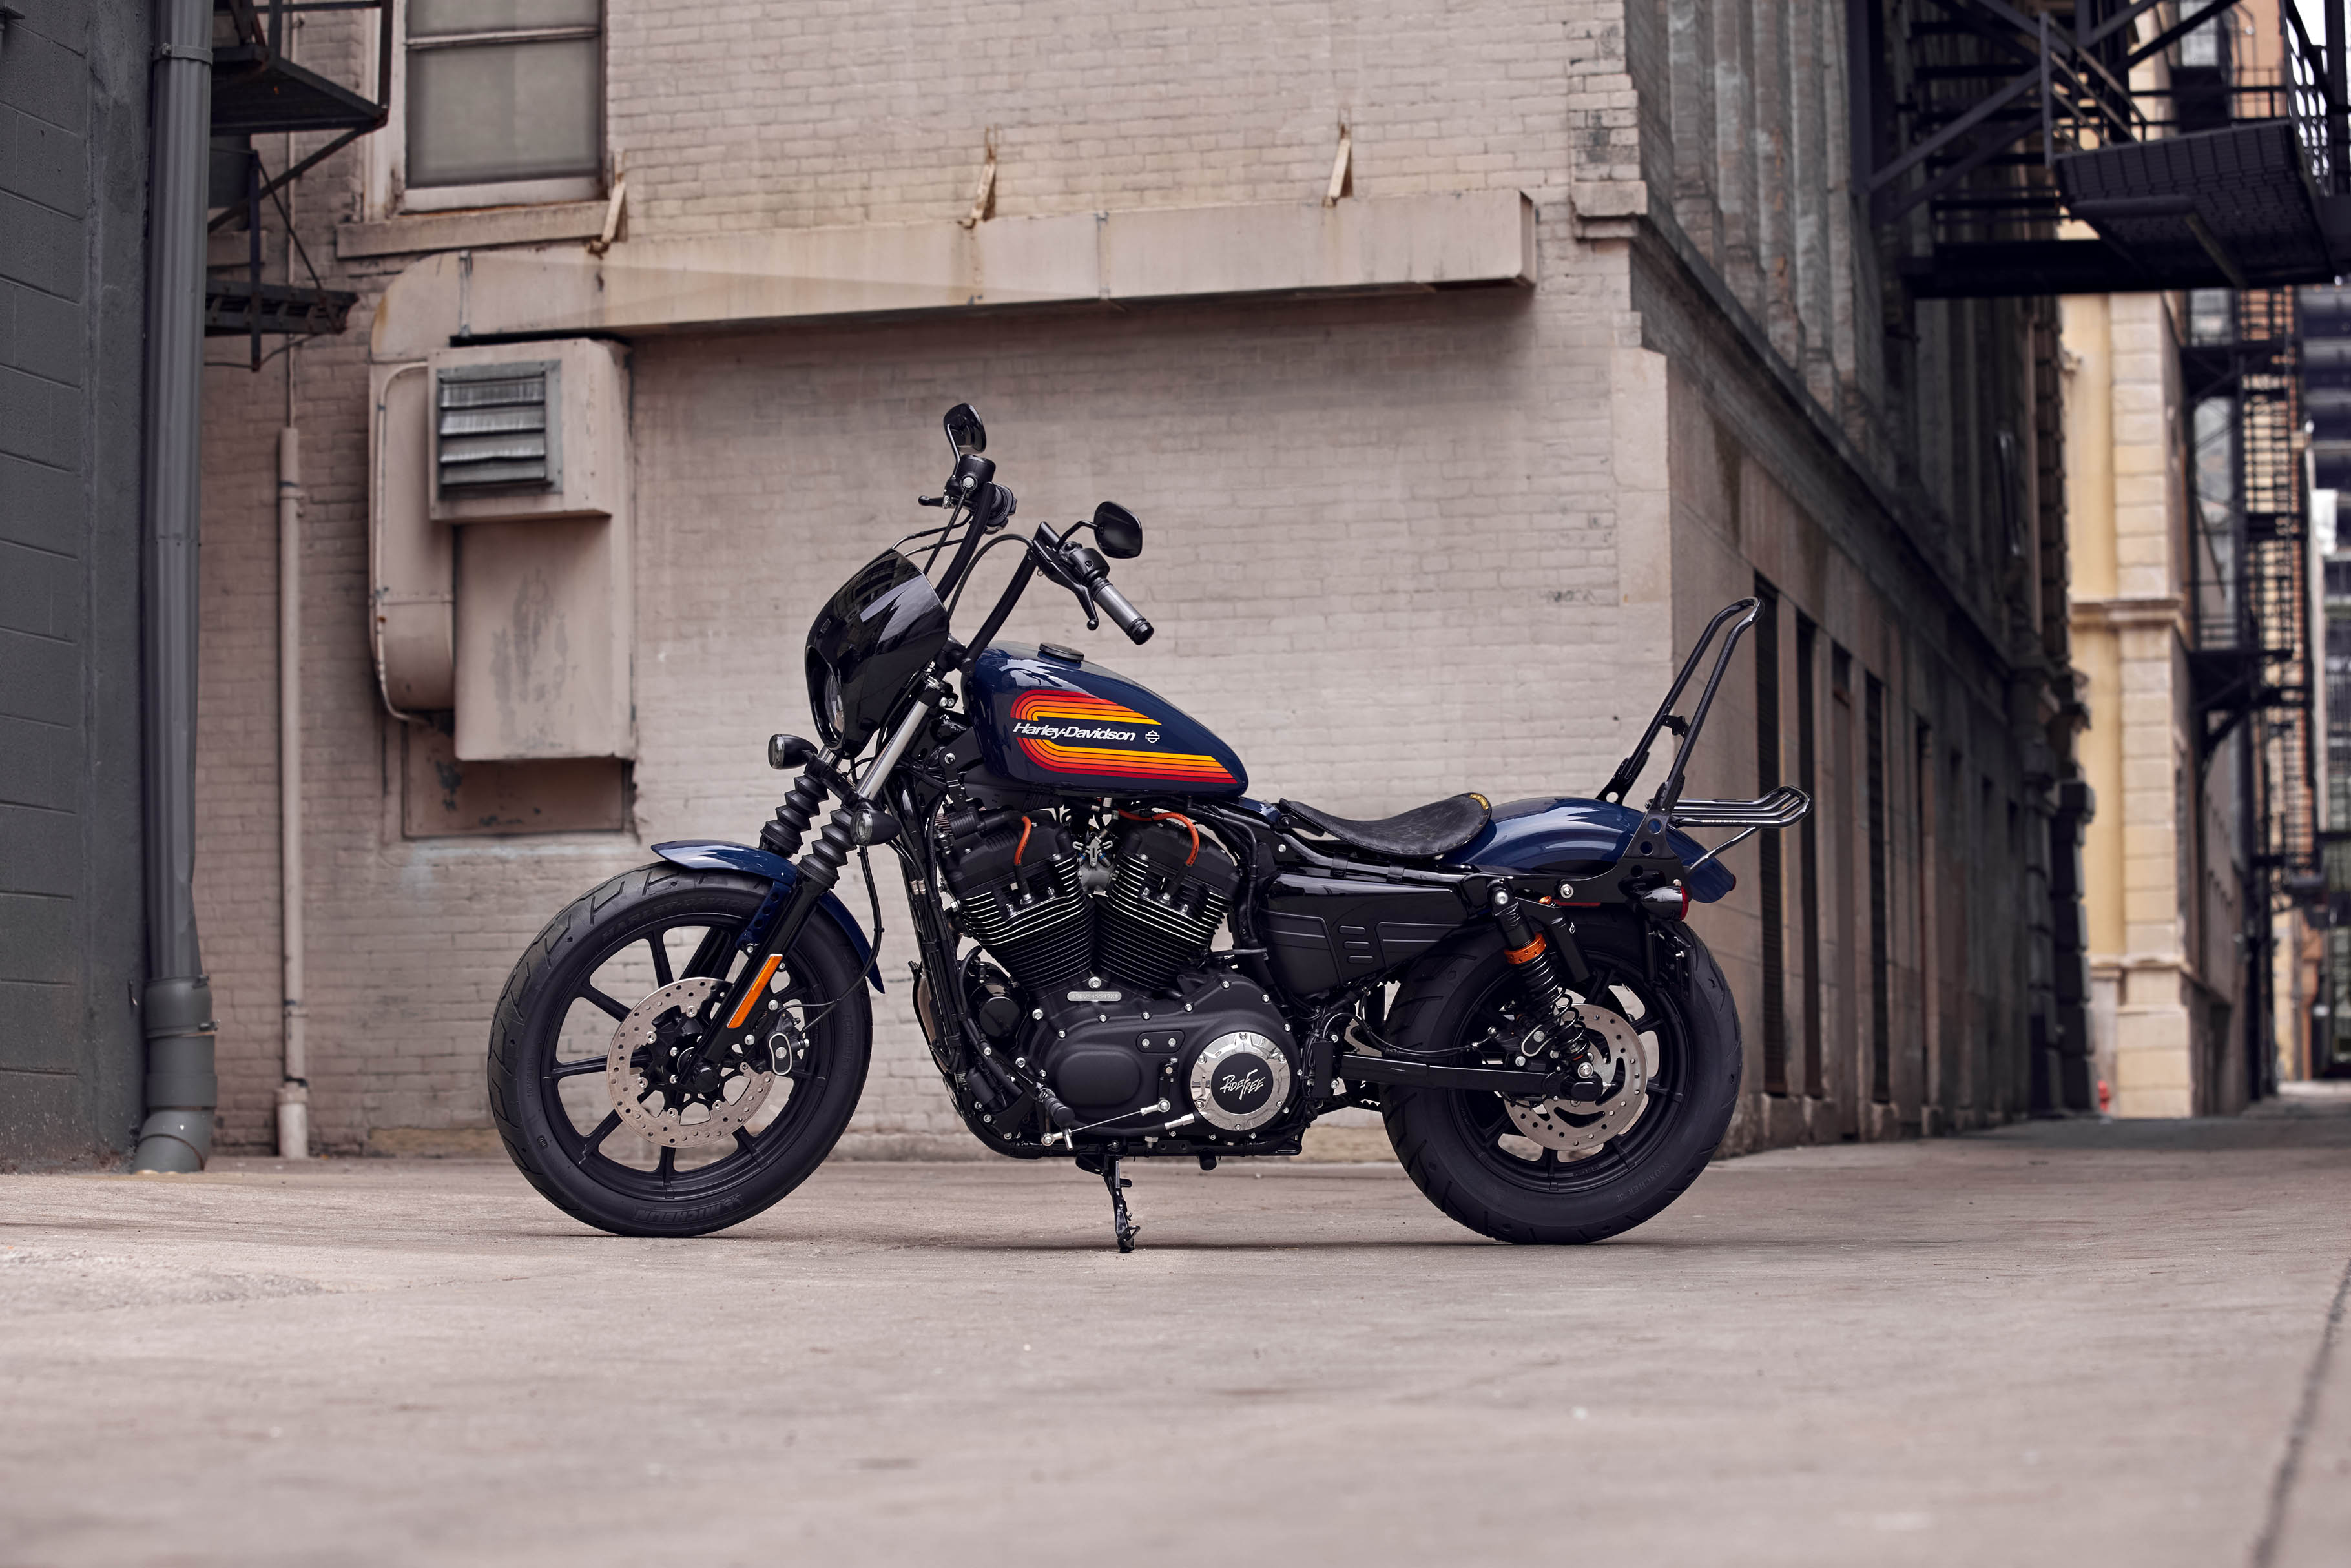 2020 Iron 1200 motorcycle Iron1200